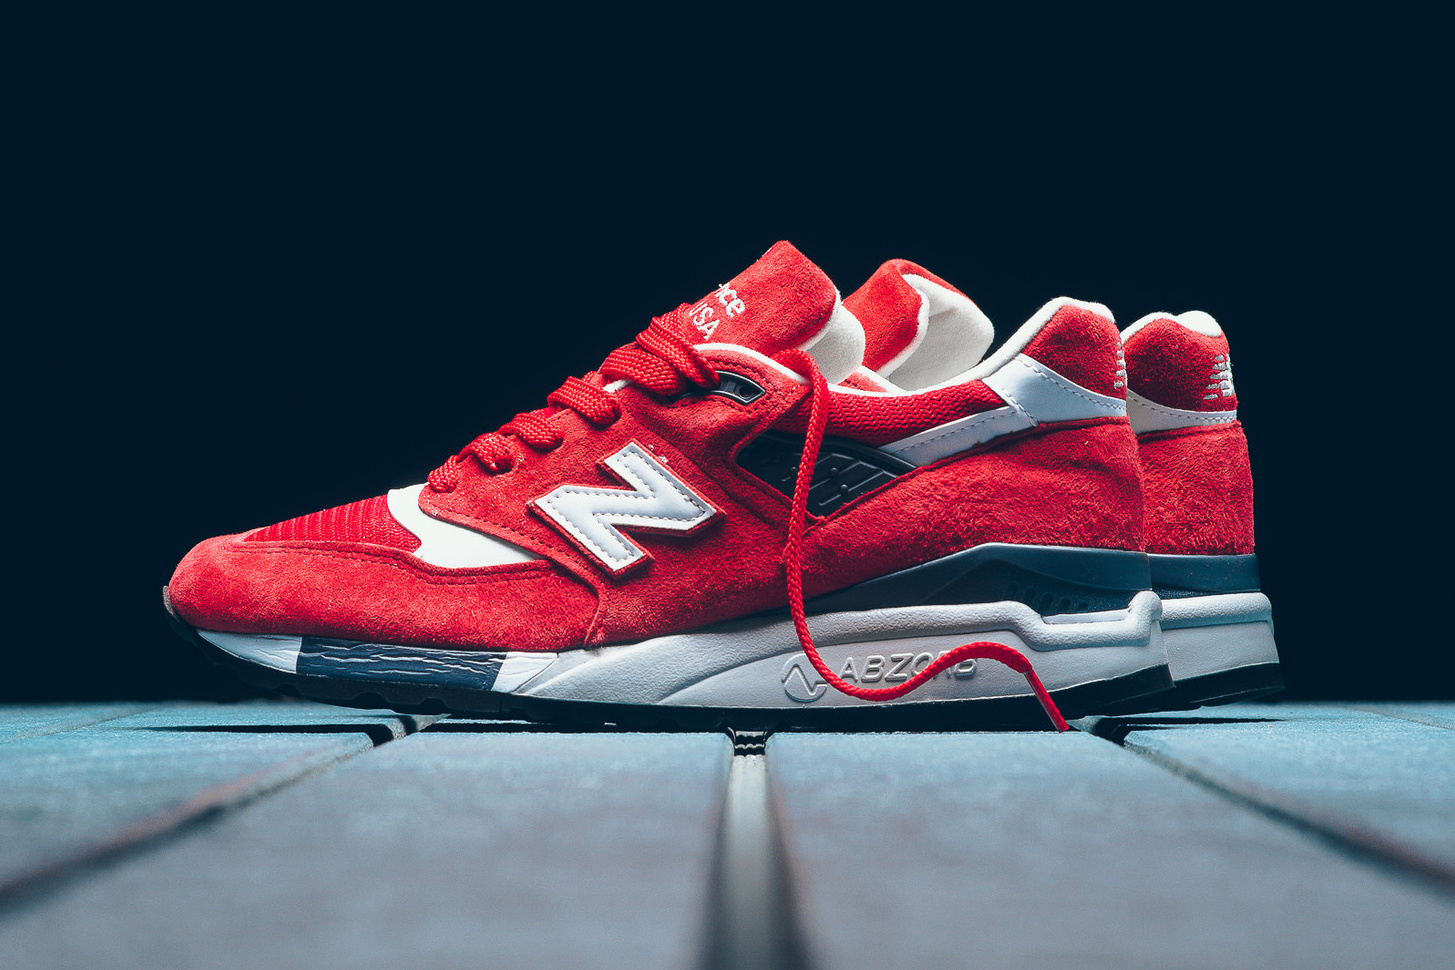 new-balance-998-m998cbu-m998crd-red-blue-white-sneaker-politics-1